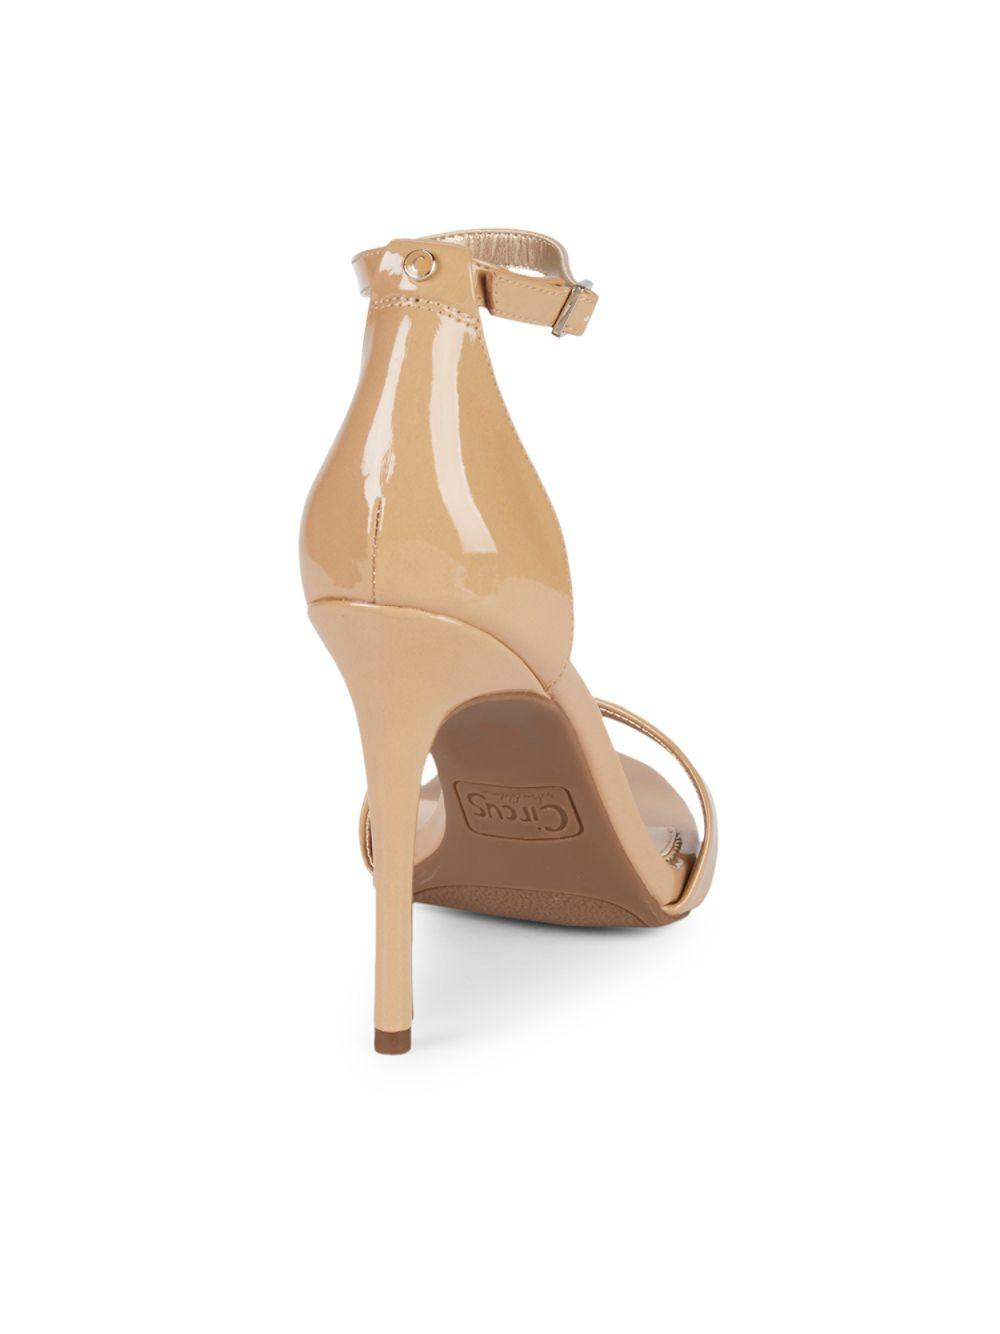 7a6452fa6d7 Circus by Sam Edelman - Natural Angela Ankle-strap Stiletto Sandals - Lyst.  View fullscreen